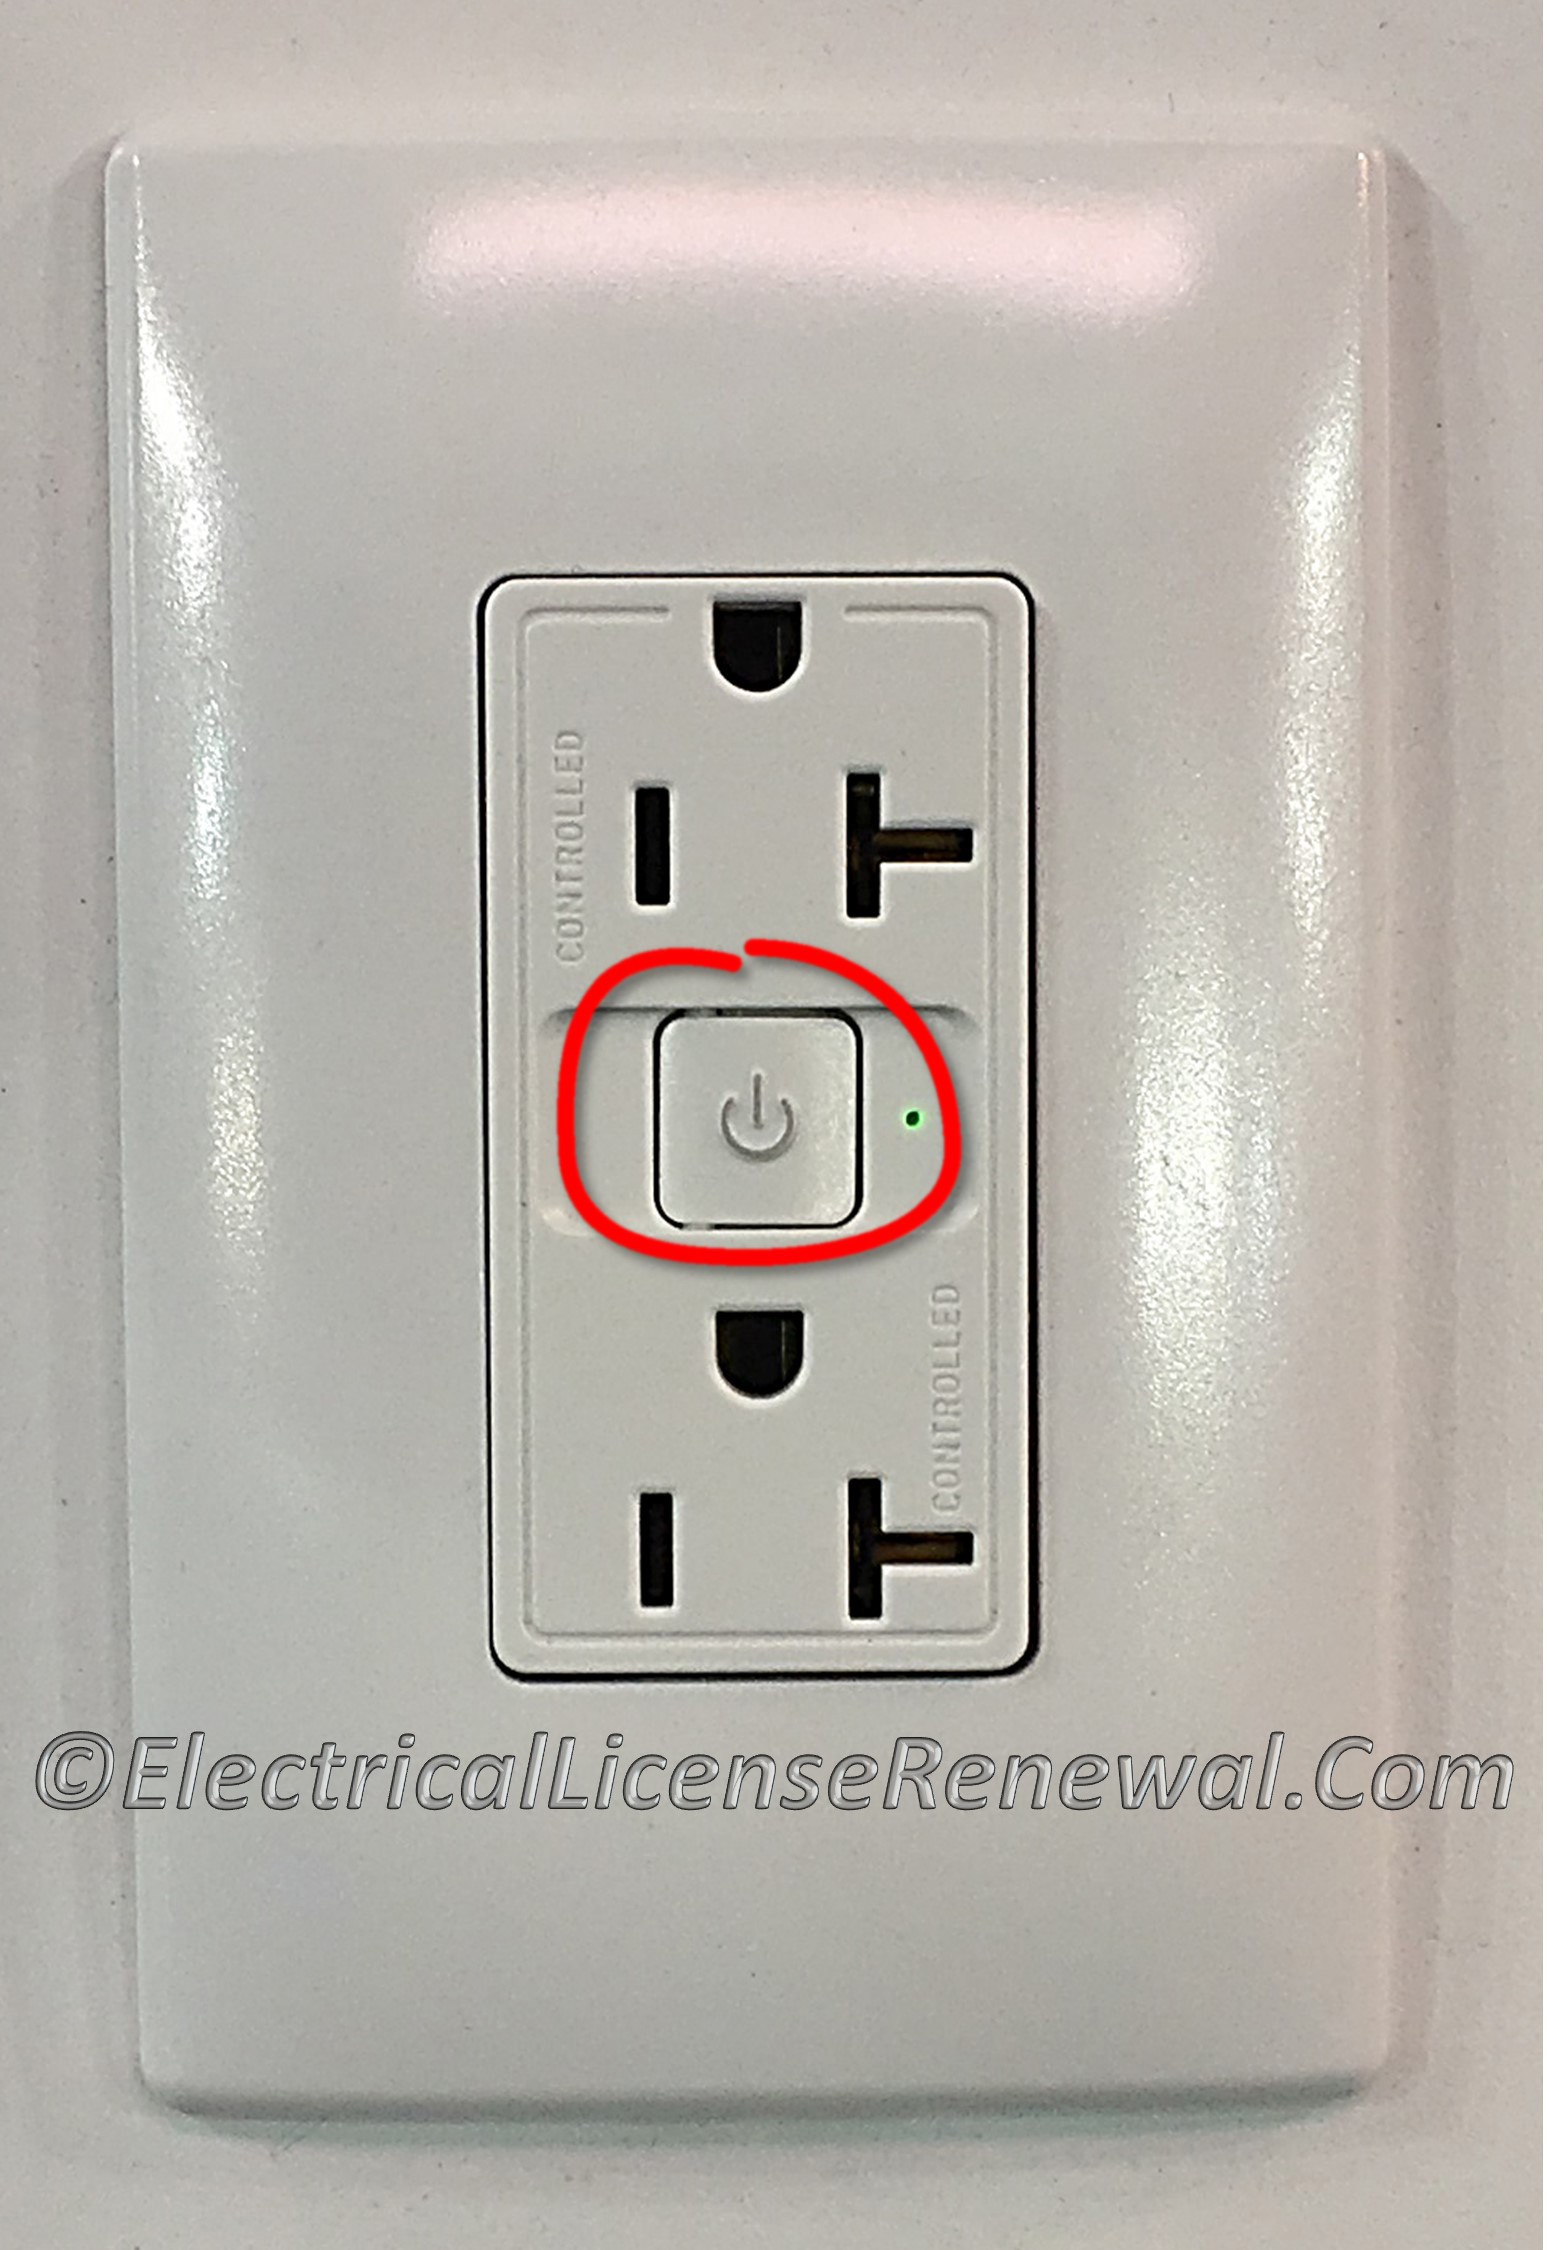 406.3(E) Controlled Receptacle Marking.